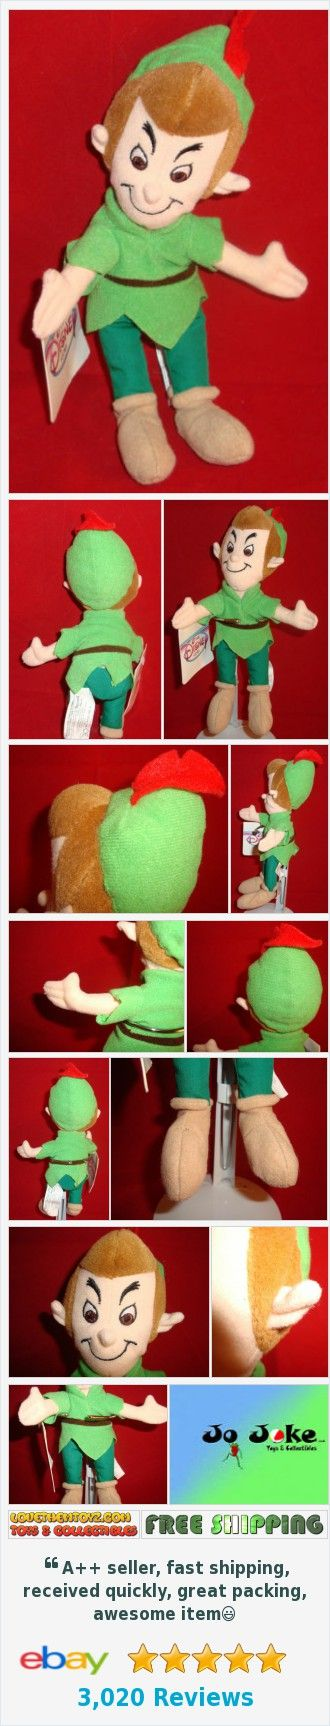 "DISNEY-PETER PAN-POINTED EARS-GREEN OUTFIT-BEAN PLUSH-8""--DISNEY STORE-NEW/TAGS 